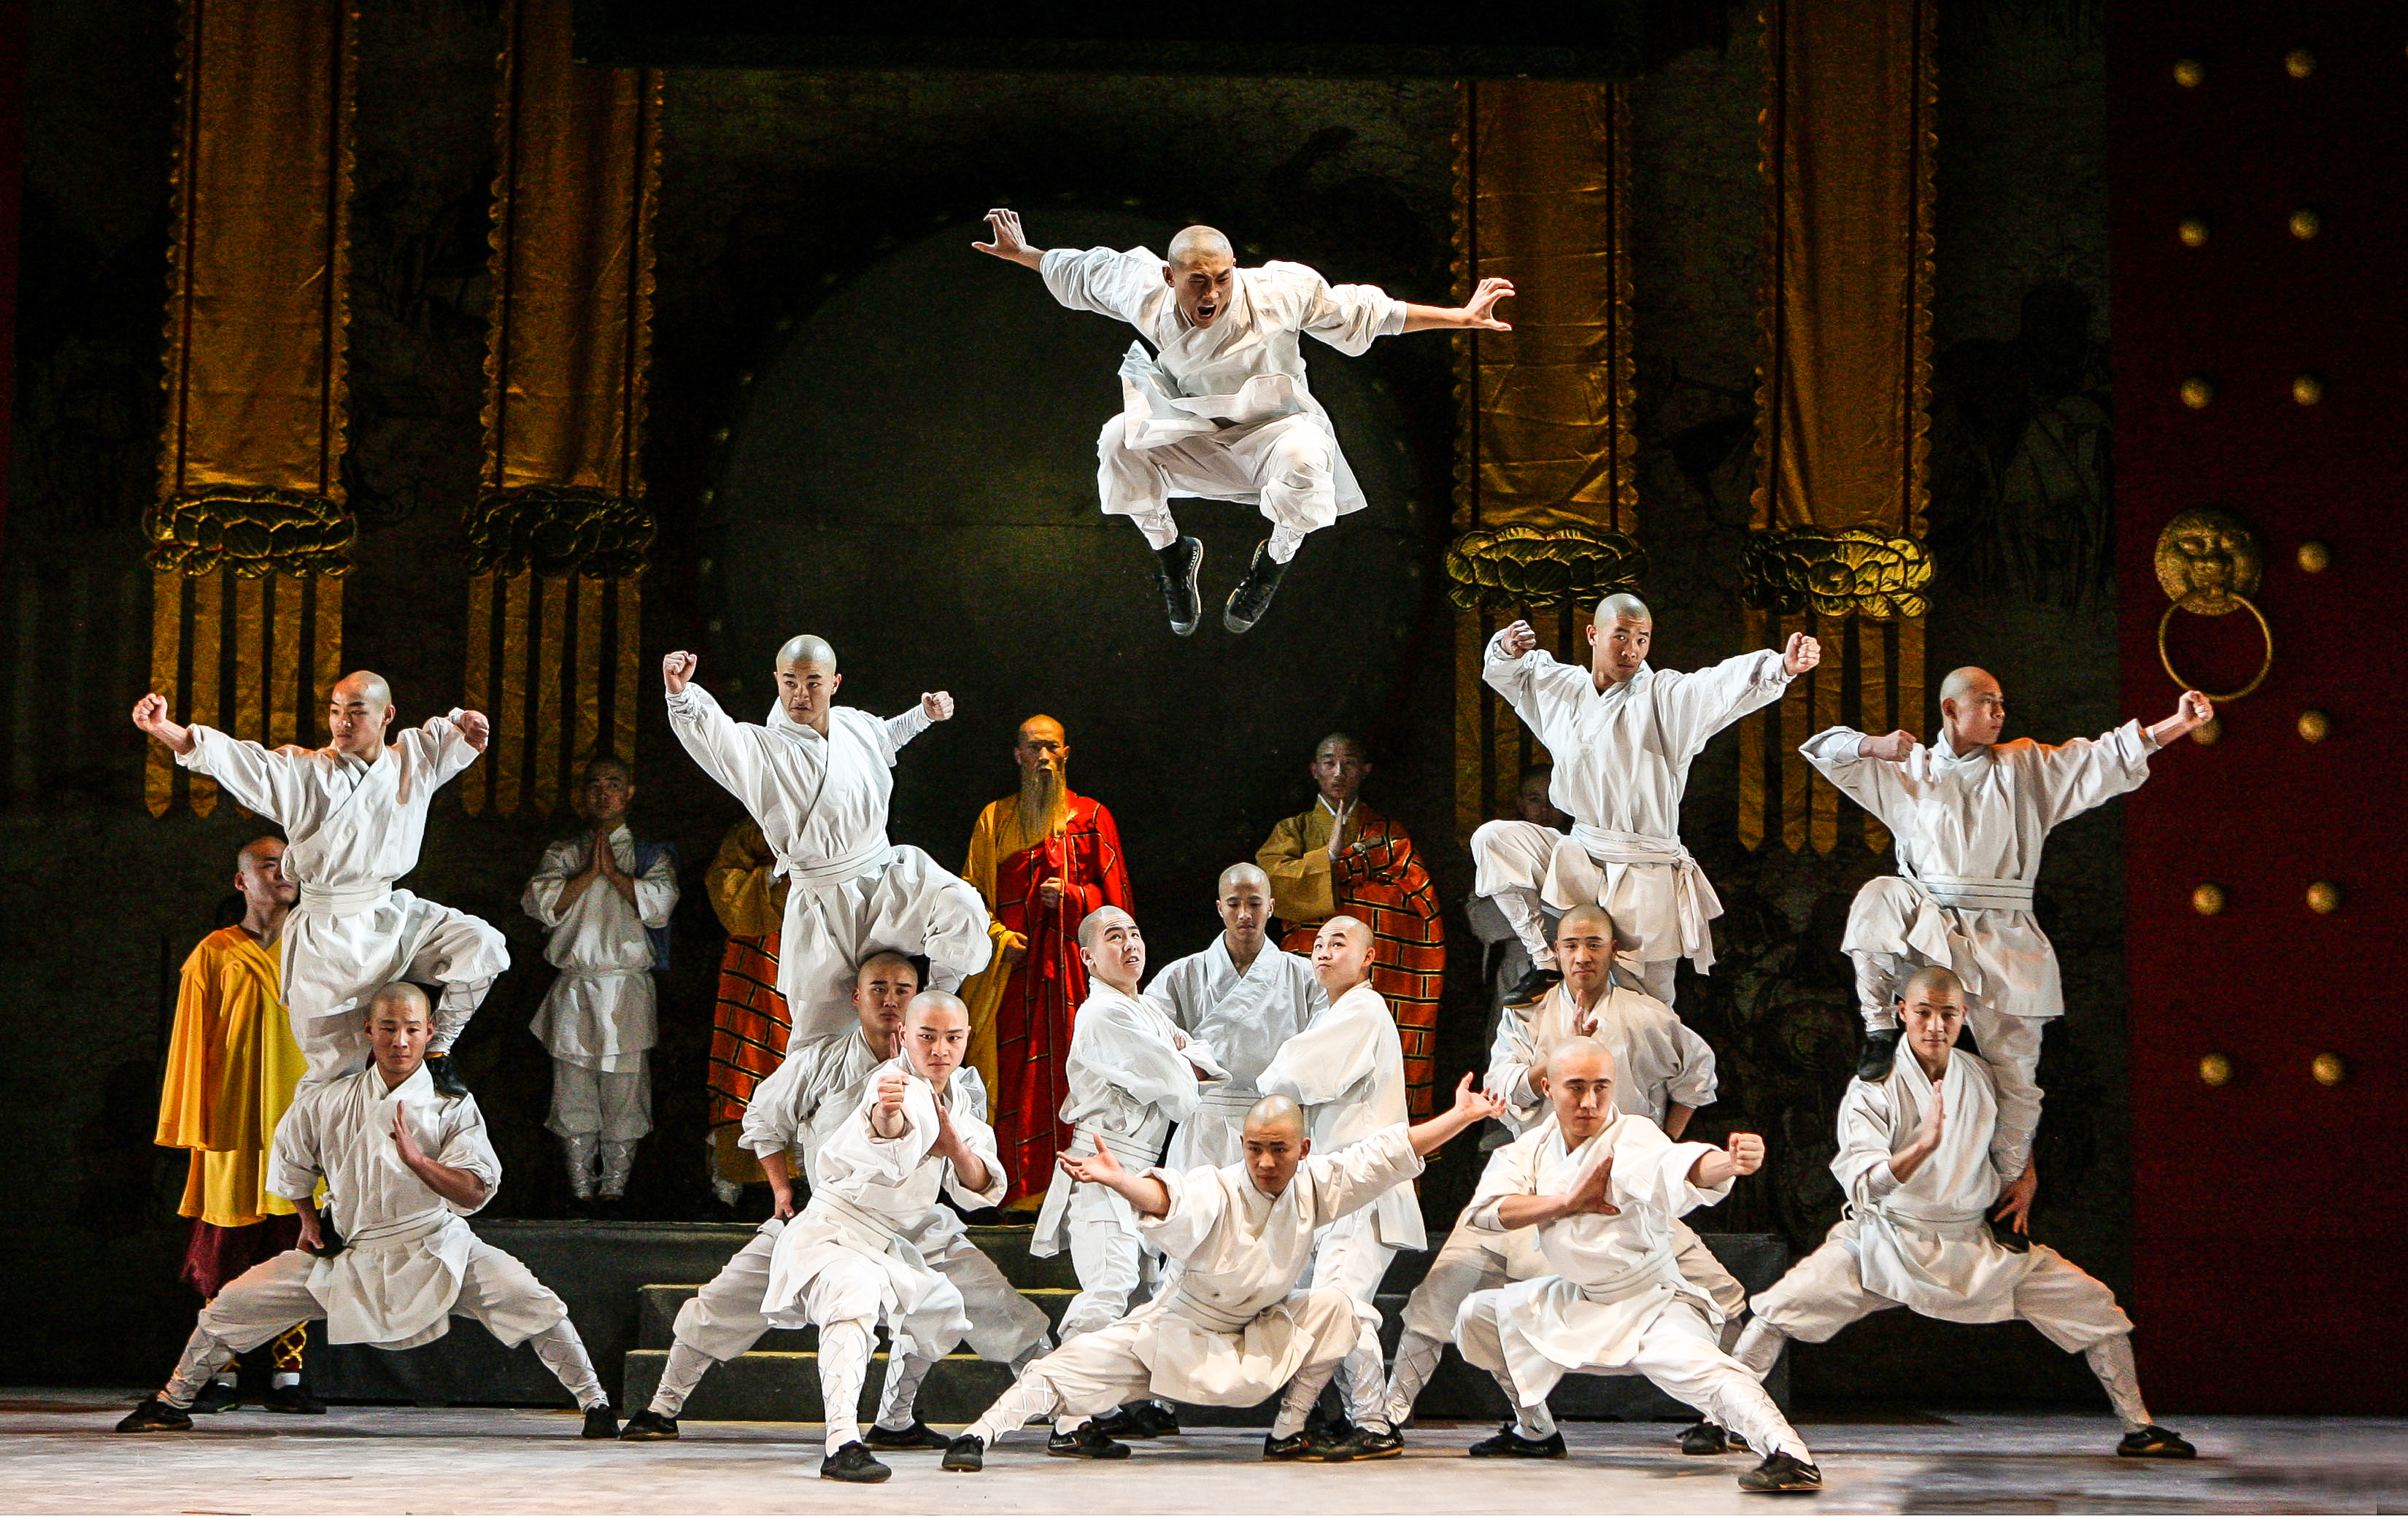 4-XShaolin005_Massive_Group_Jump.jpg-4